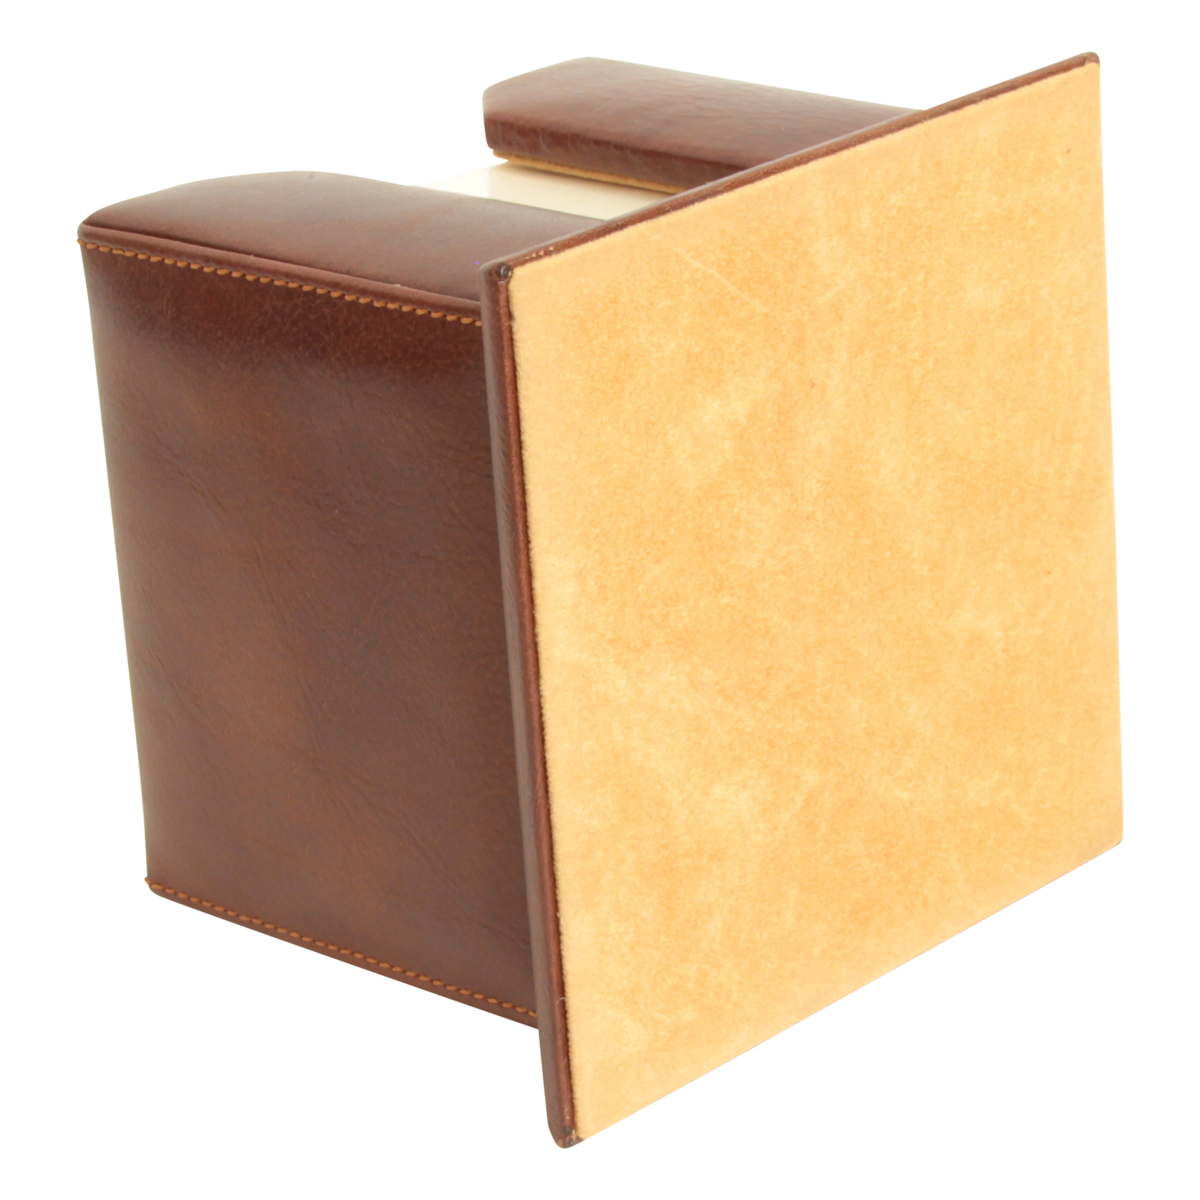 Leather Memo Pad Holder - Brown | 754405MA E | Old Angler Firenze